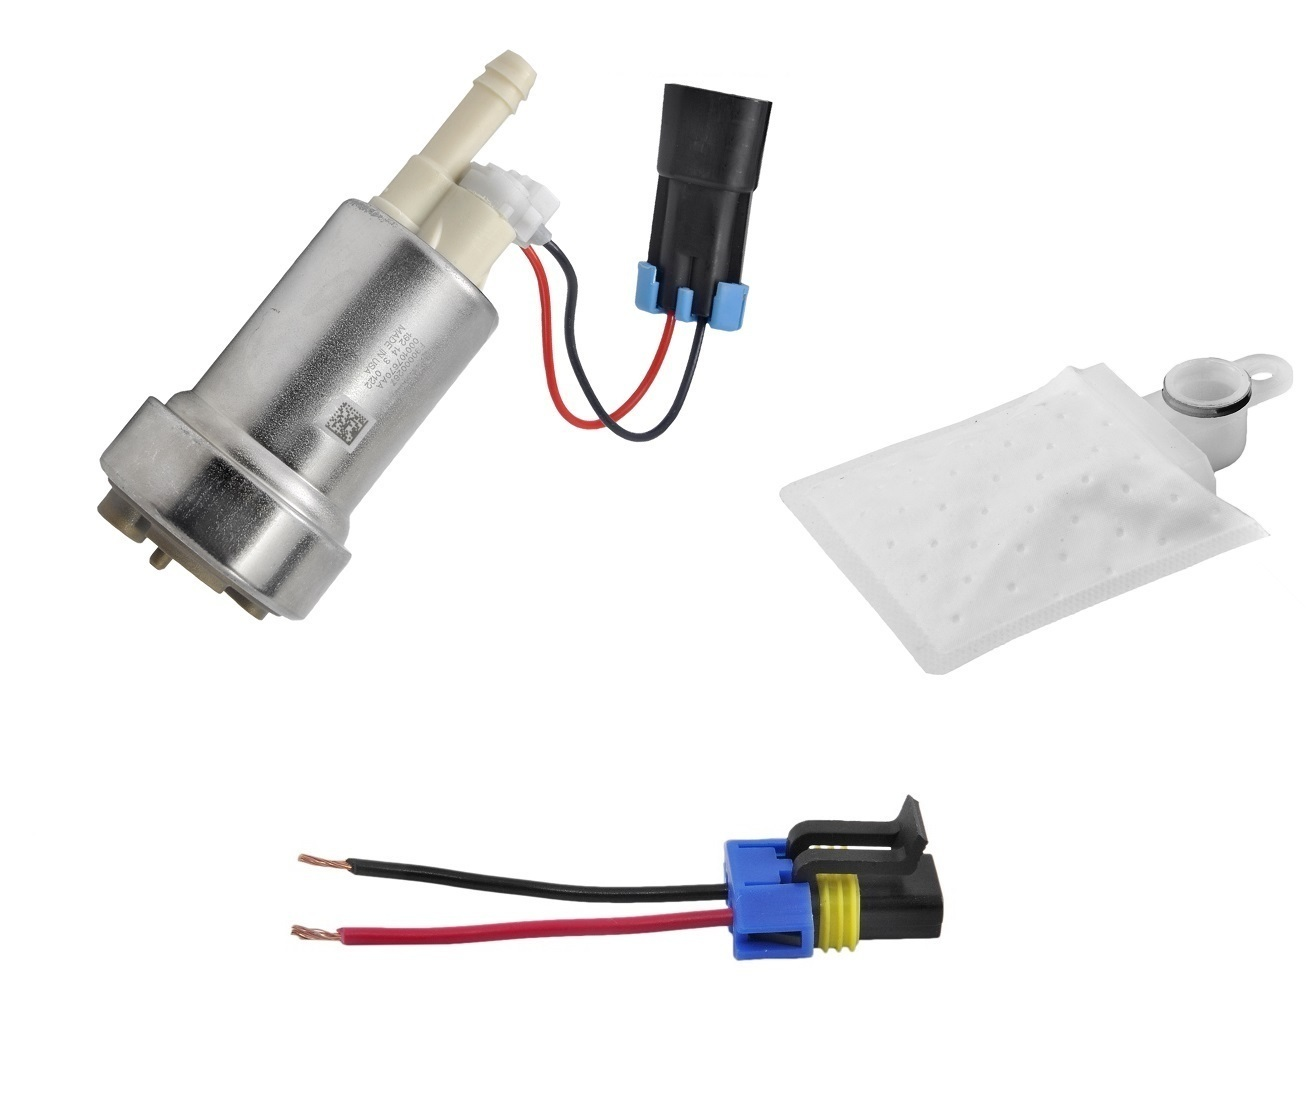 HP In-Tank Fuel Pump 460lph W/Fitting Kit (e85 Compatible)